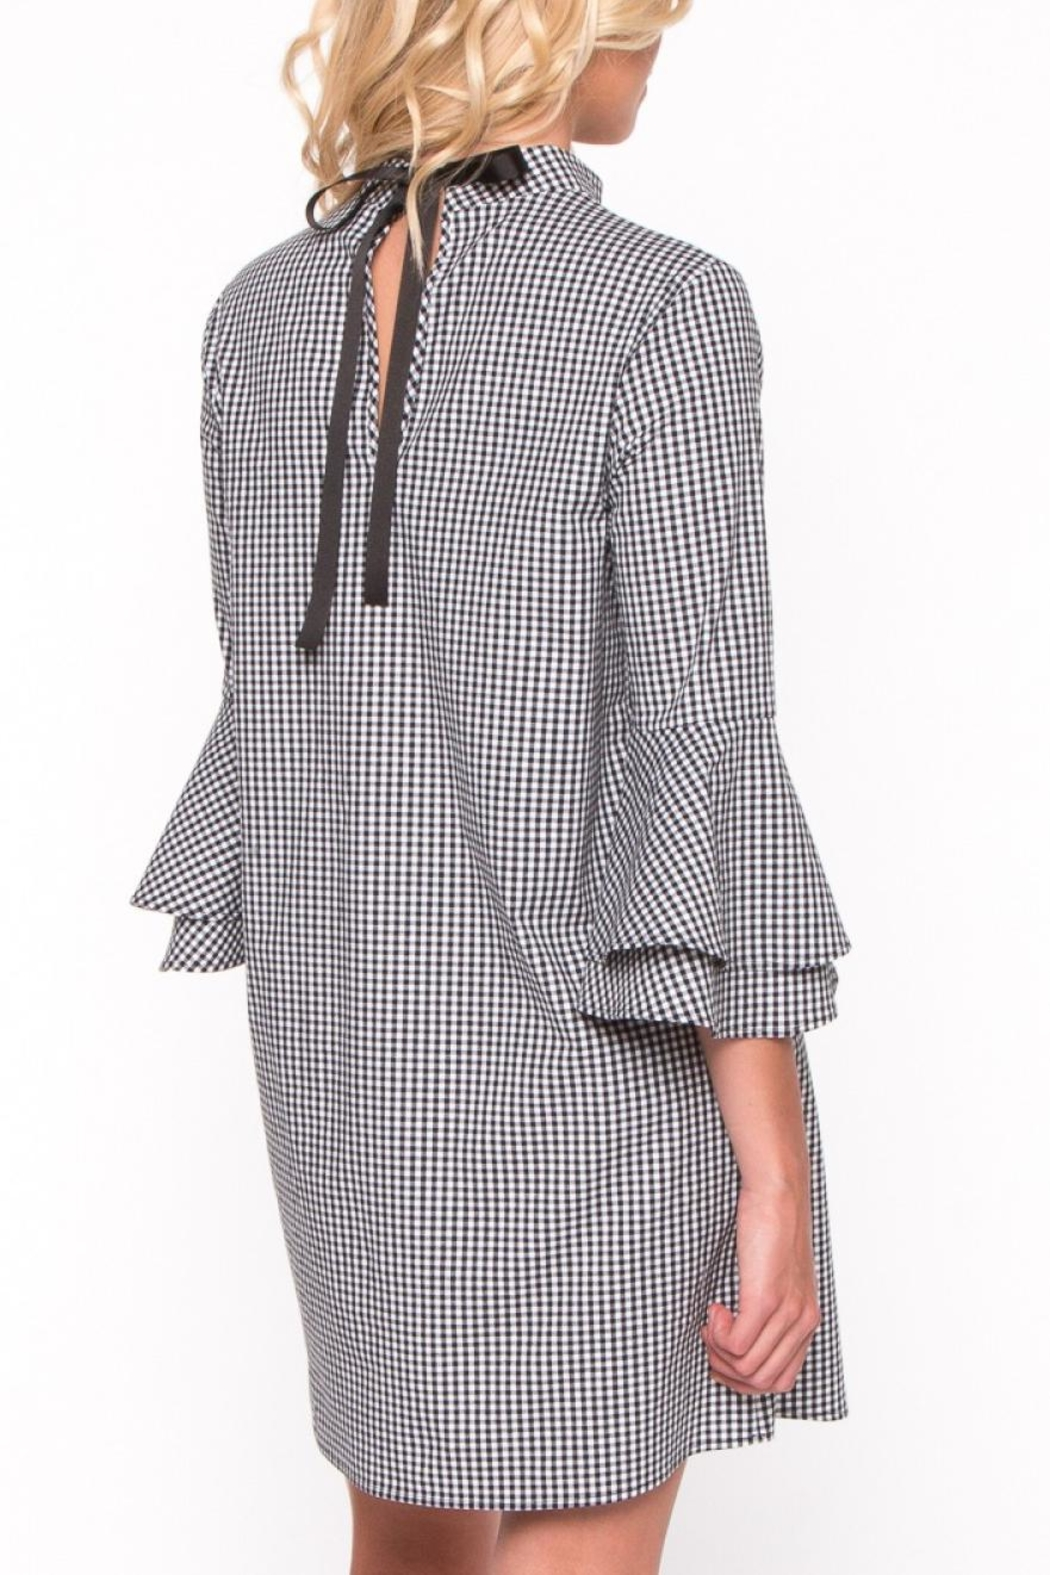 Everly Gingham Bell Sleeve Dress - Side Cropped Image